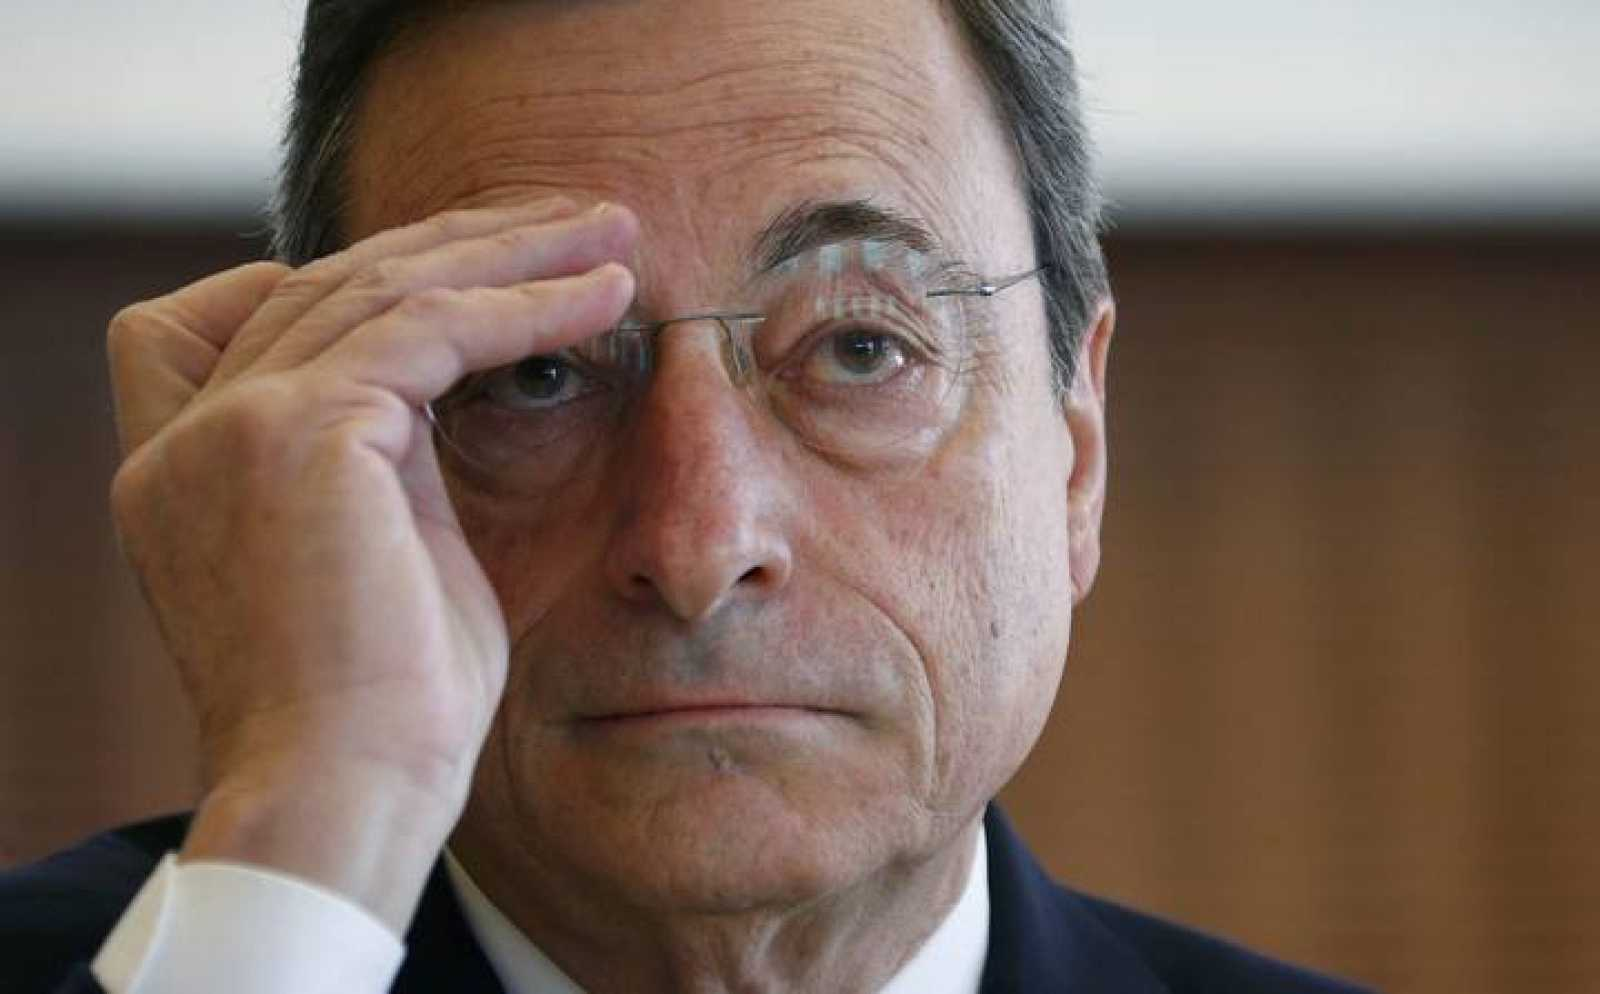 European Central Bank (ECB) President Draghi adjusts his glasses during the IMFS Conference 2015 in Frankfurt